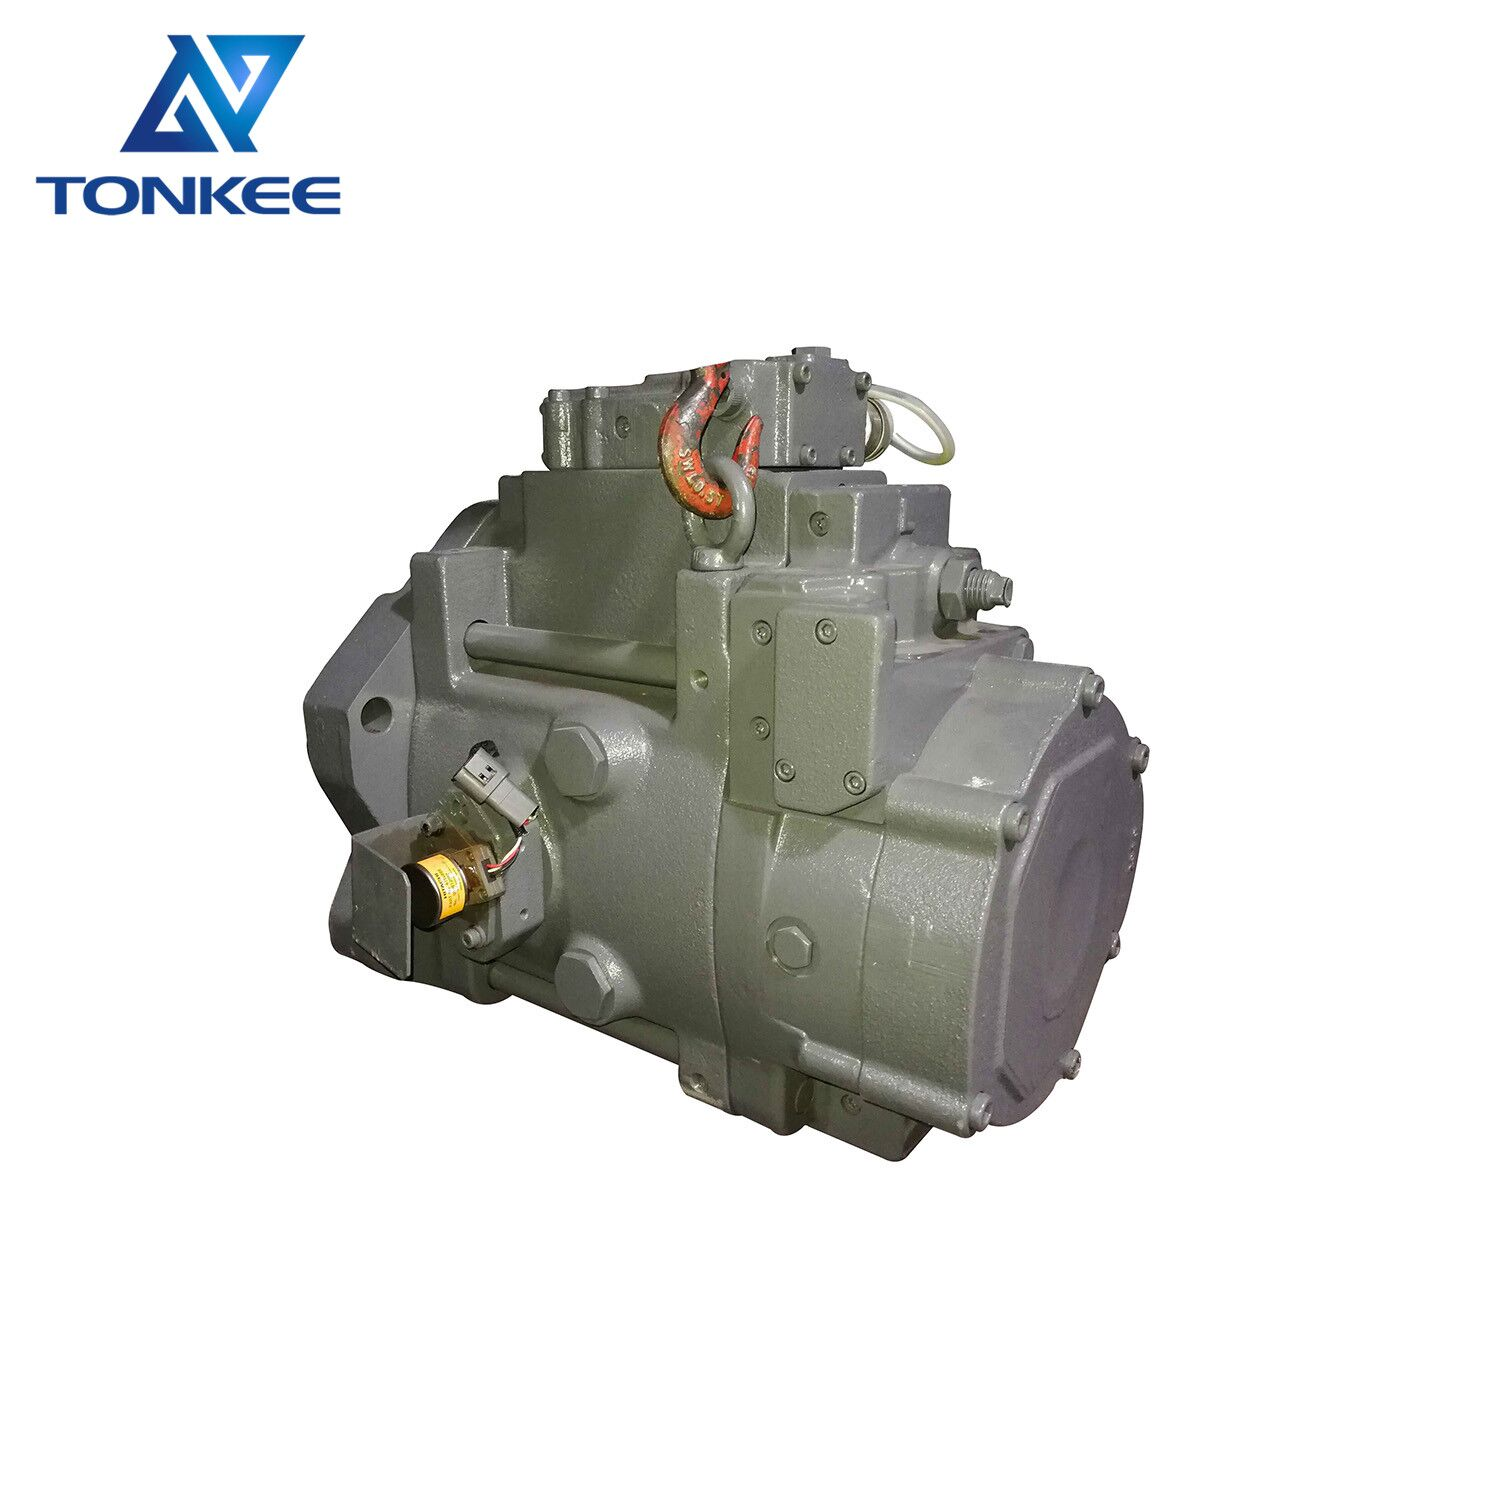 EX1200-6 ZX650-3 ZX670-3 ZX850-3 ZX870-3 excavator hydraulic piston pump assembly with angle sensor YA00003088 4635645 K3V280SH140L-0E41-VD K3V280 hydraulic main pump assy with angular transducer suitable for HITACHI